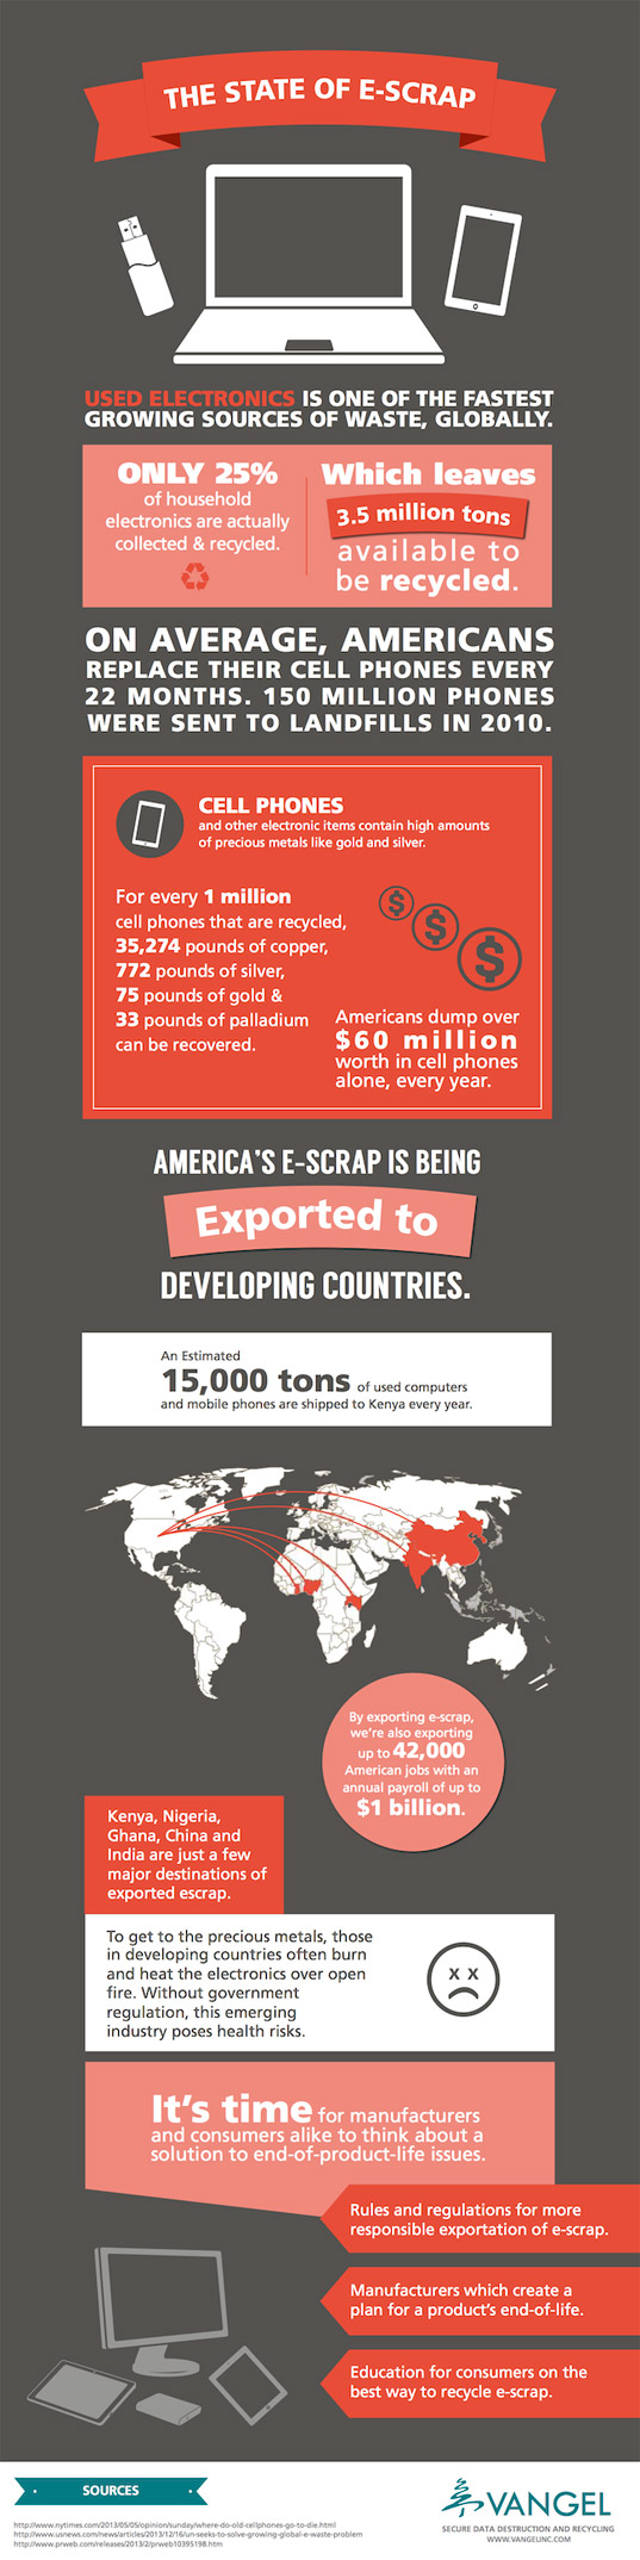 The-State-of-E-Waste-infographic-2